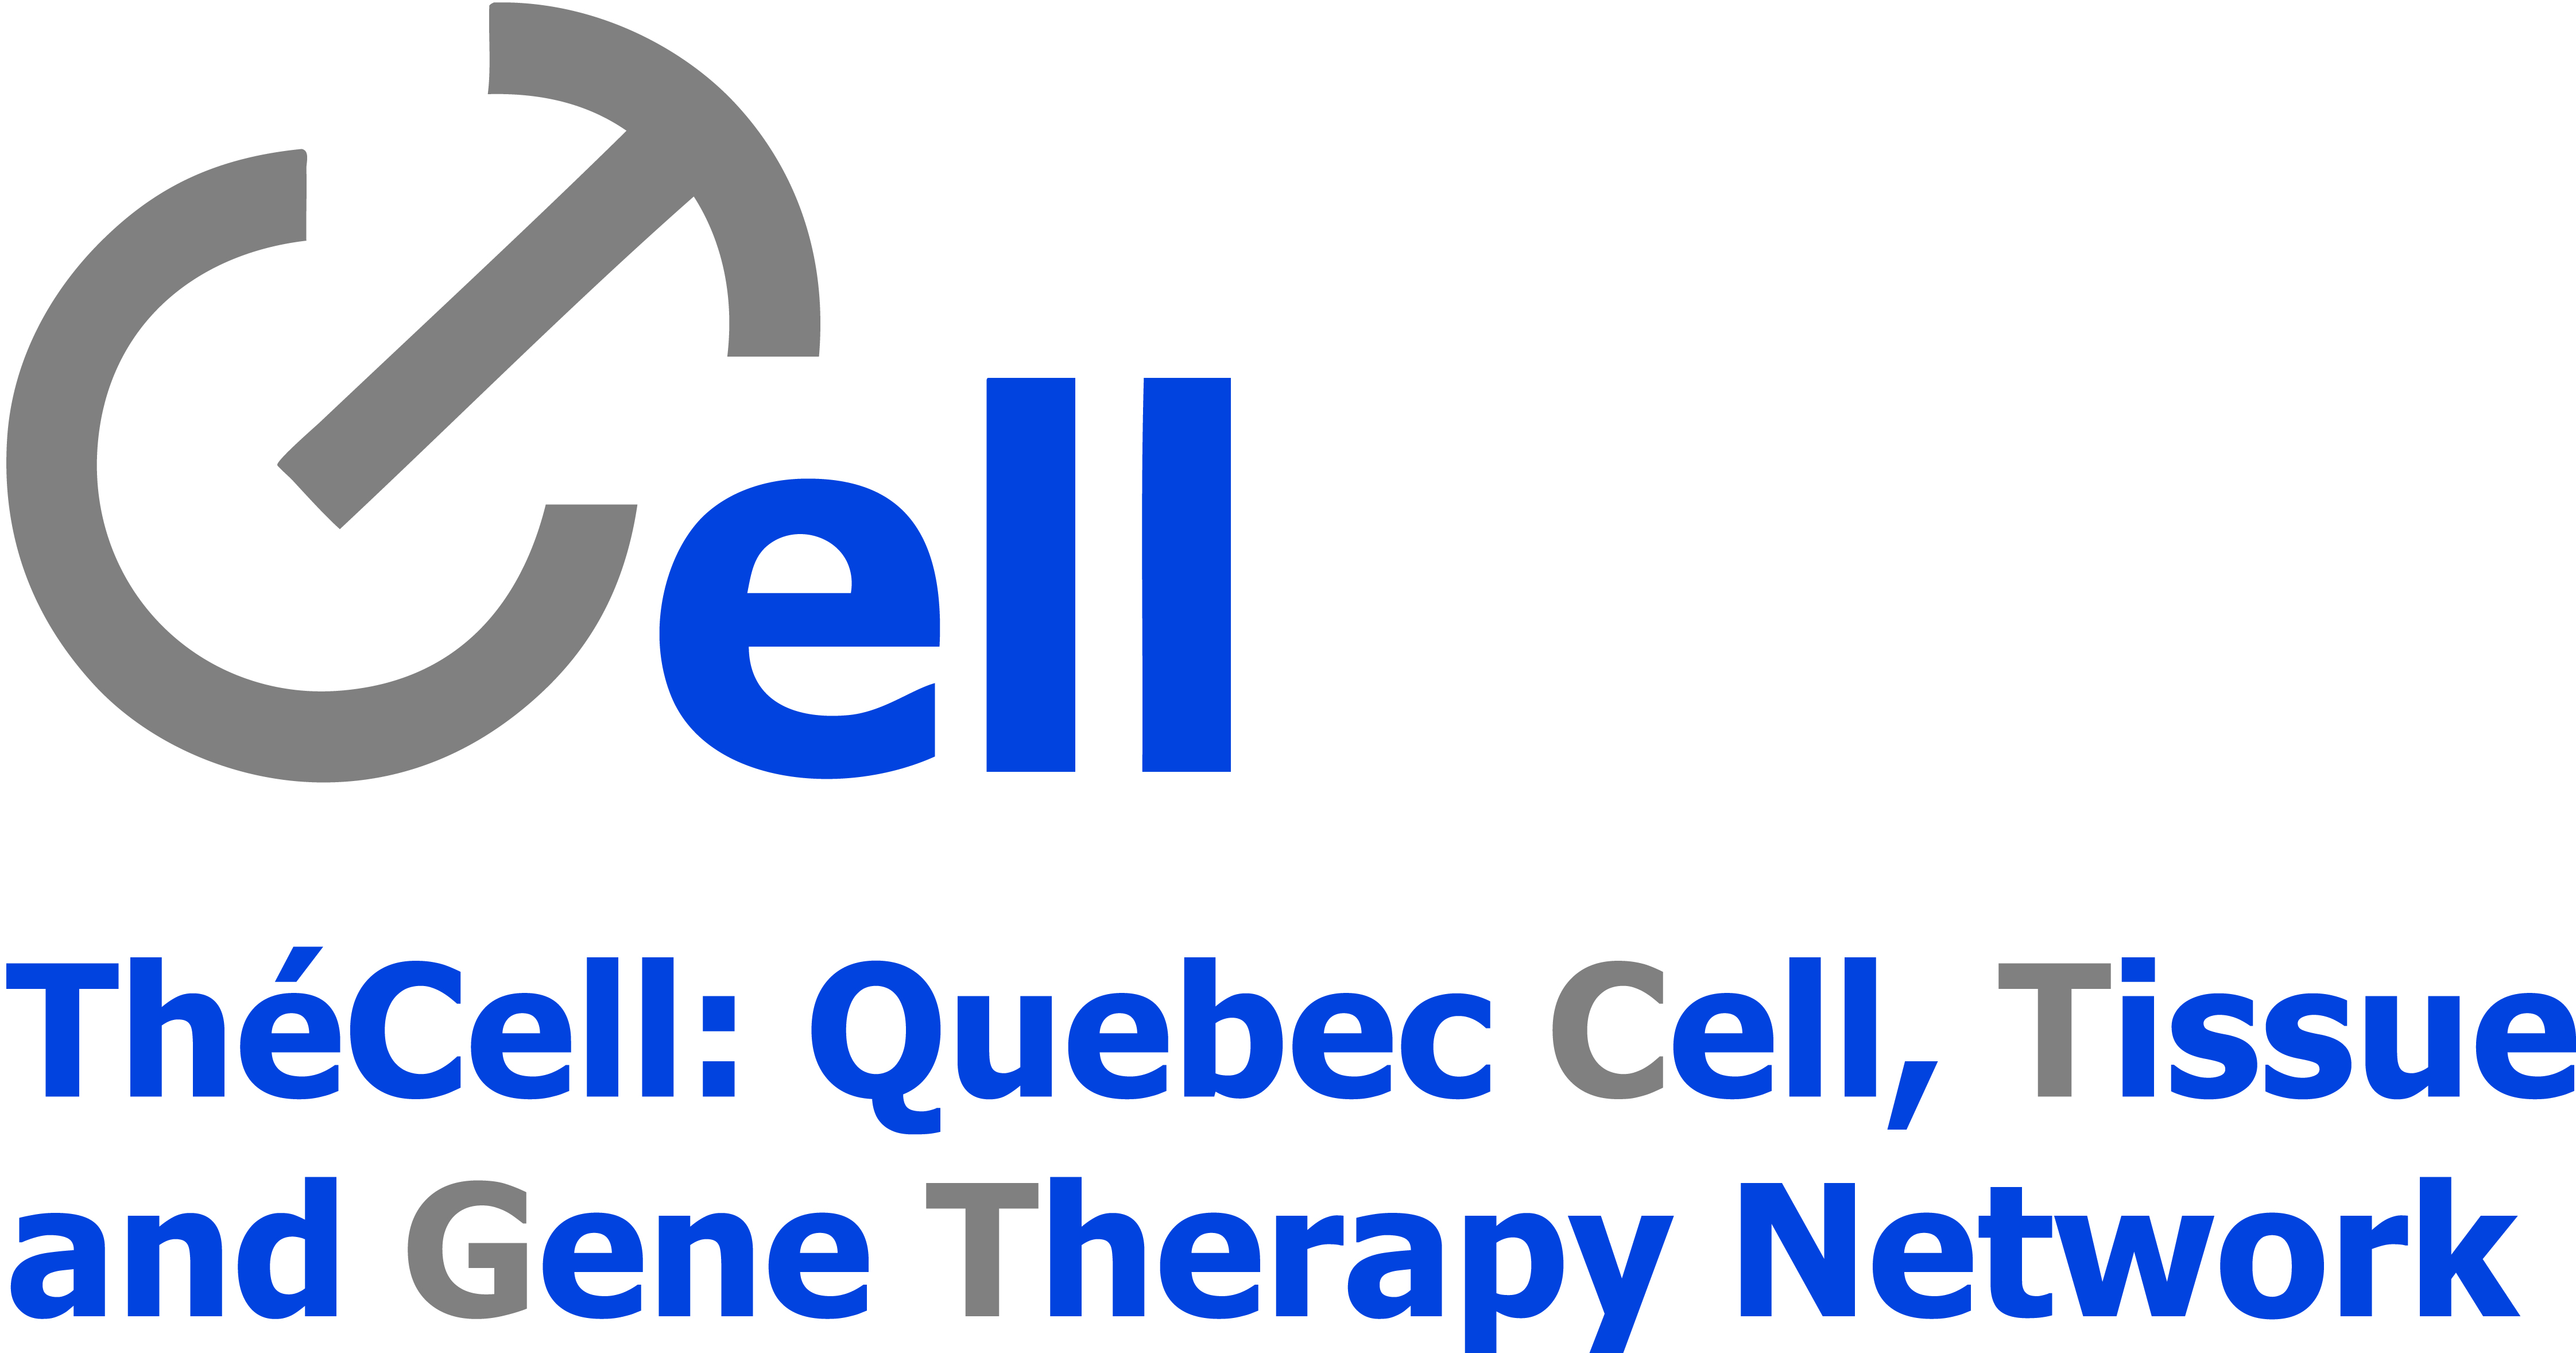 Logo TCell_CTG_Quebec_XL_English_vector v2 2019